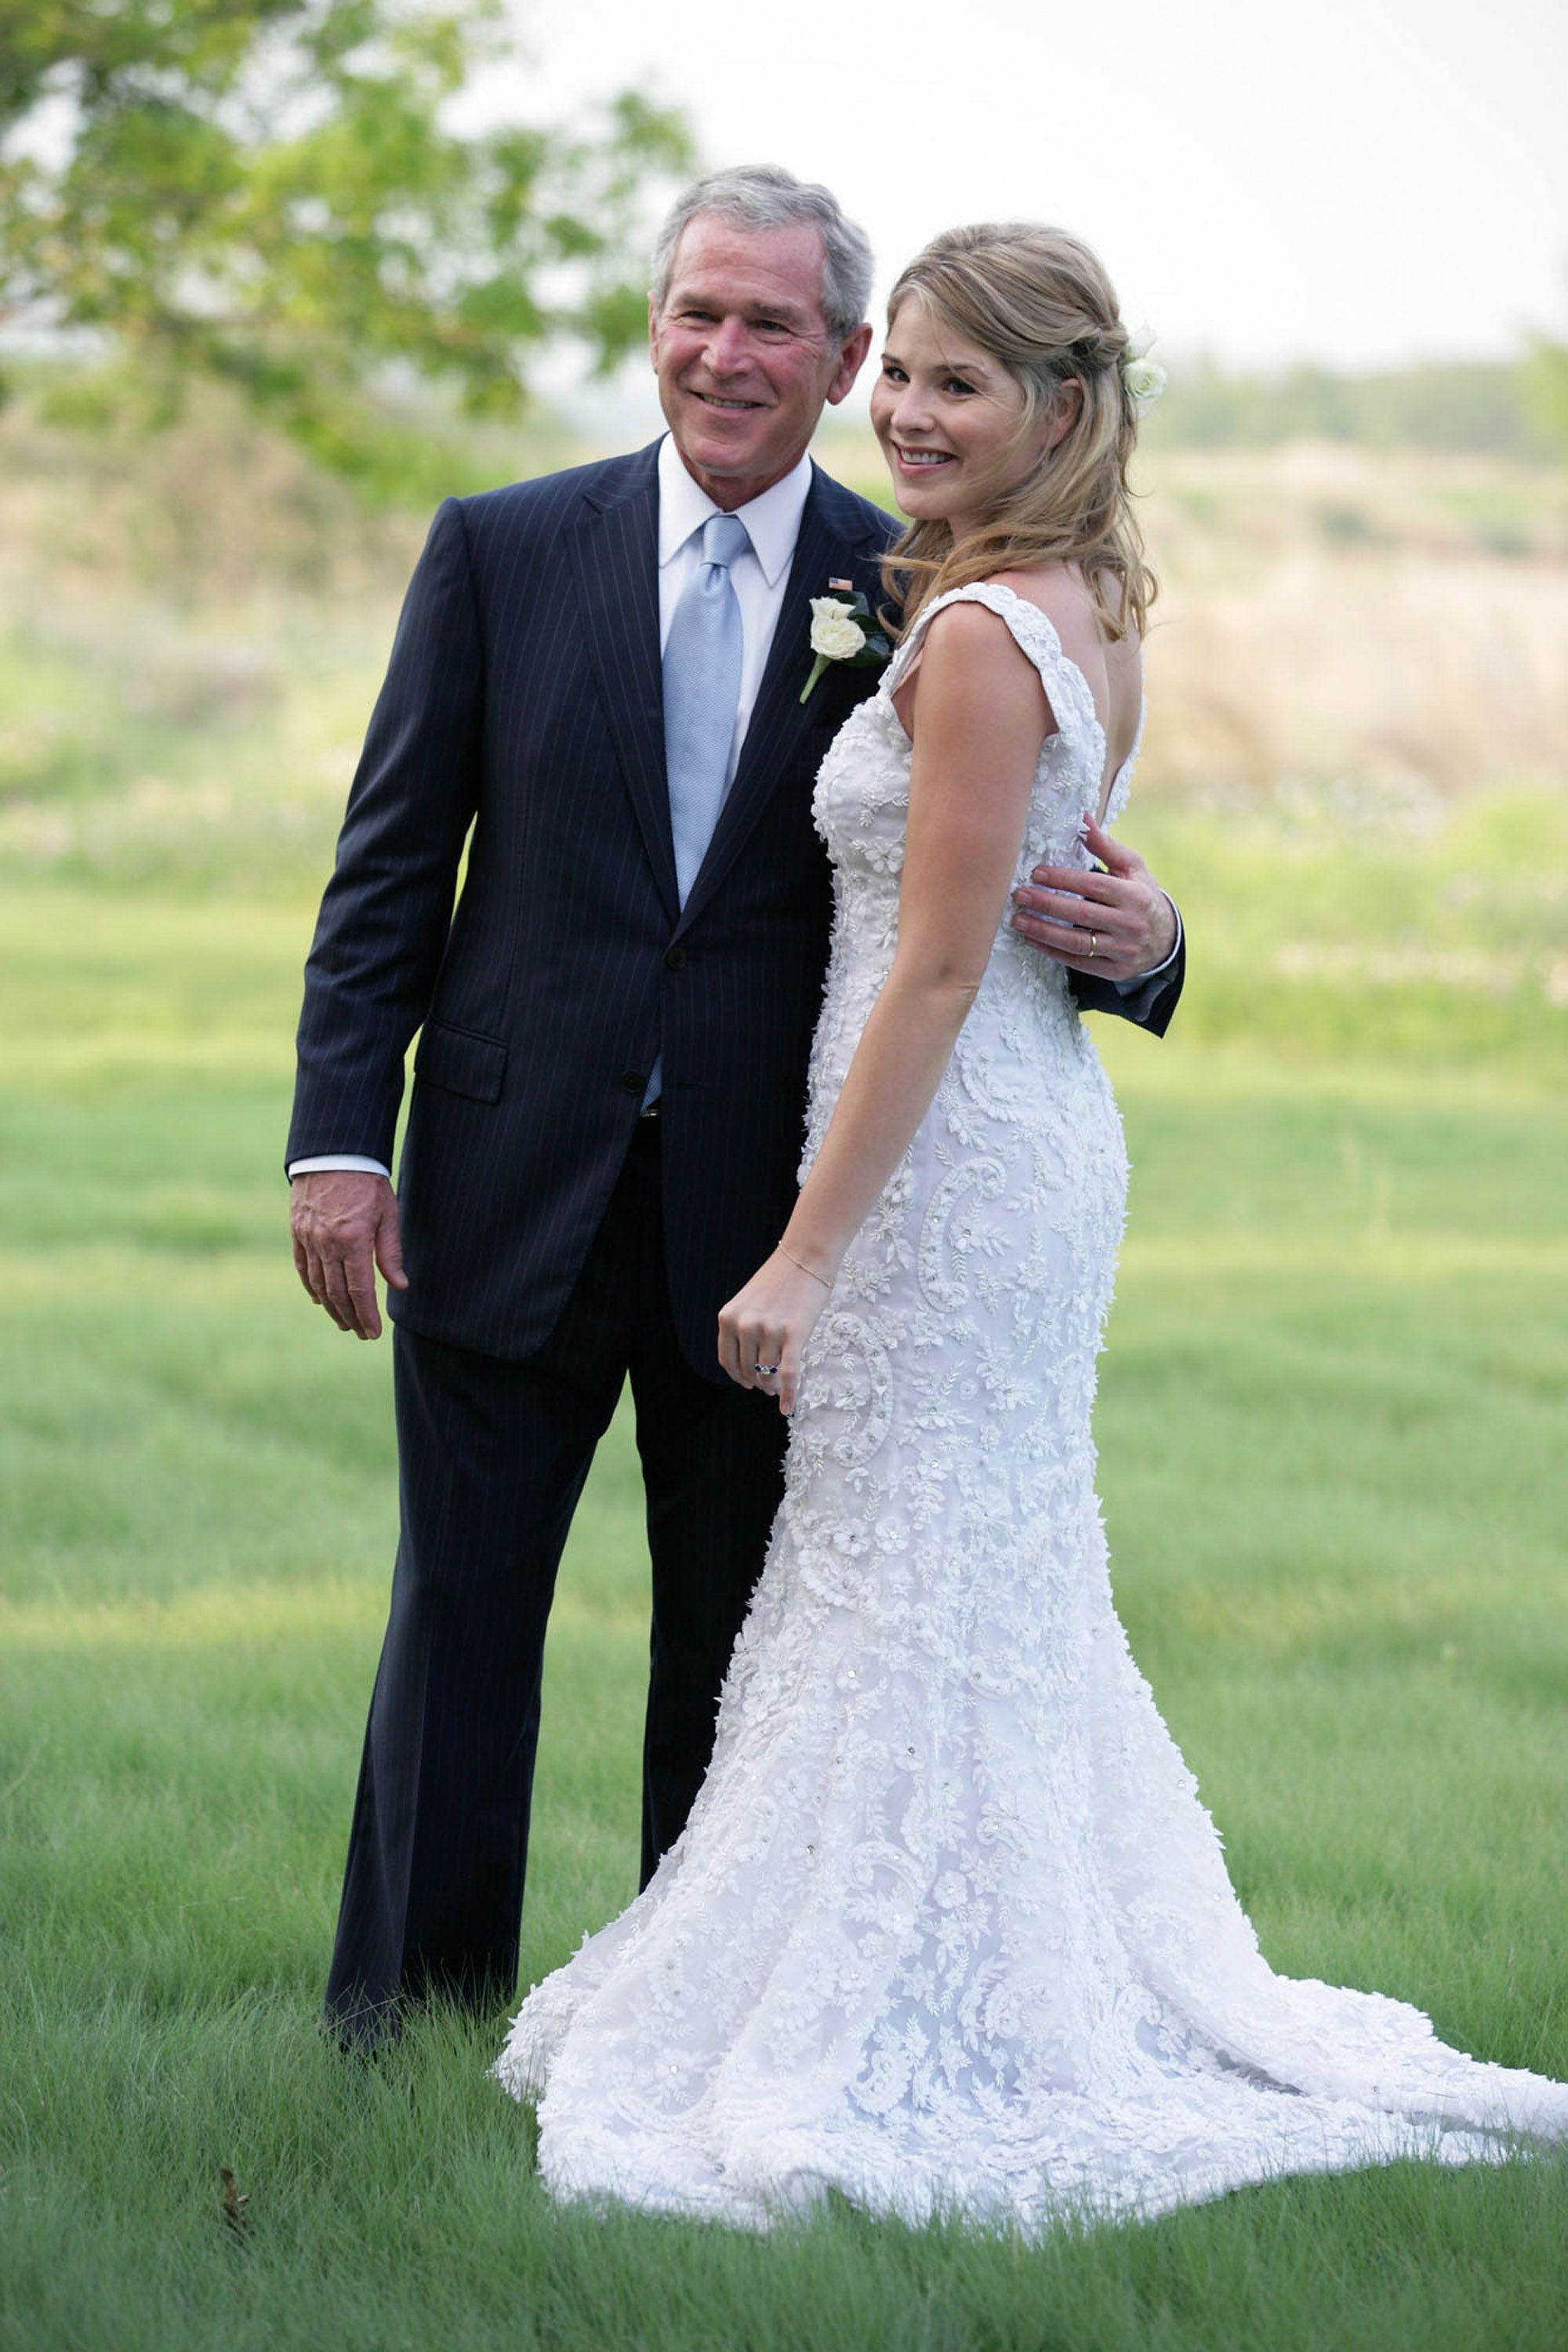 President George W. Bush and Jenna Bush Hager prior to her wedding on May 10, 2008. Hager says her father was a feminist